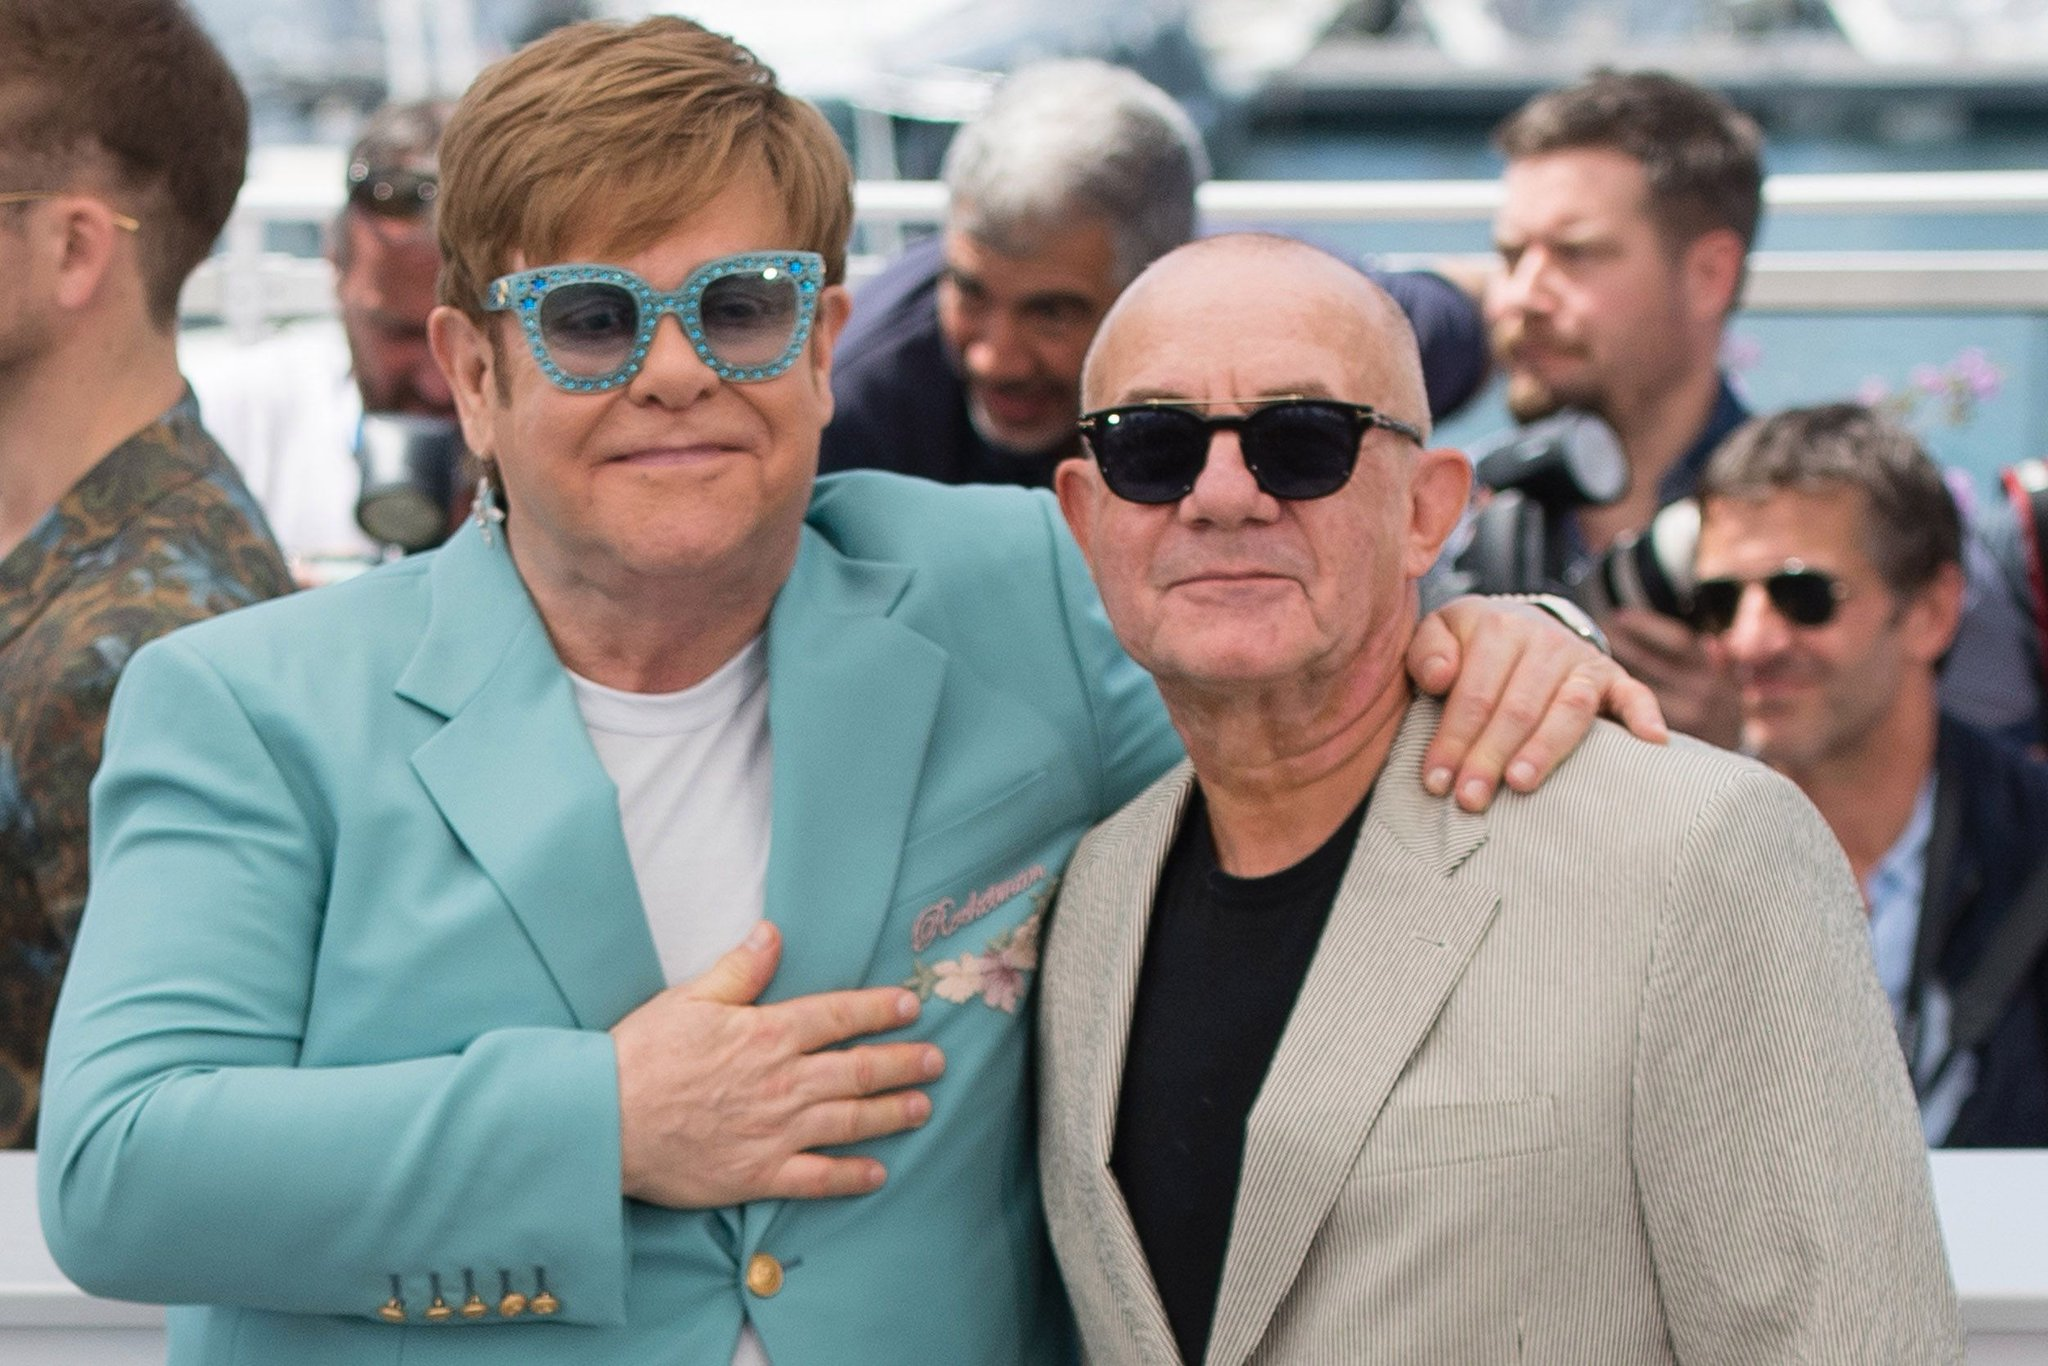 Happy Birthday to Elton John s long-term writing partner Bernie Taupin, he s 70 today!